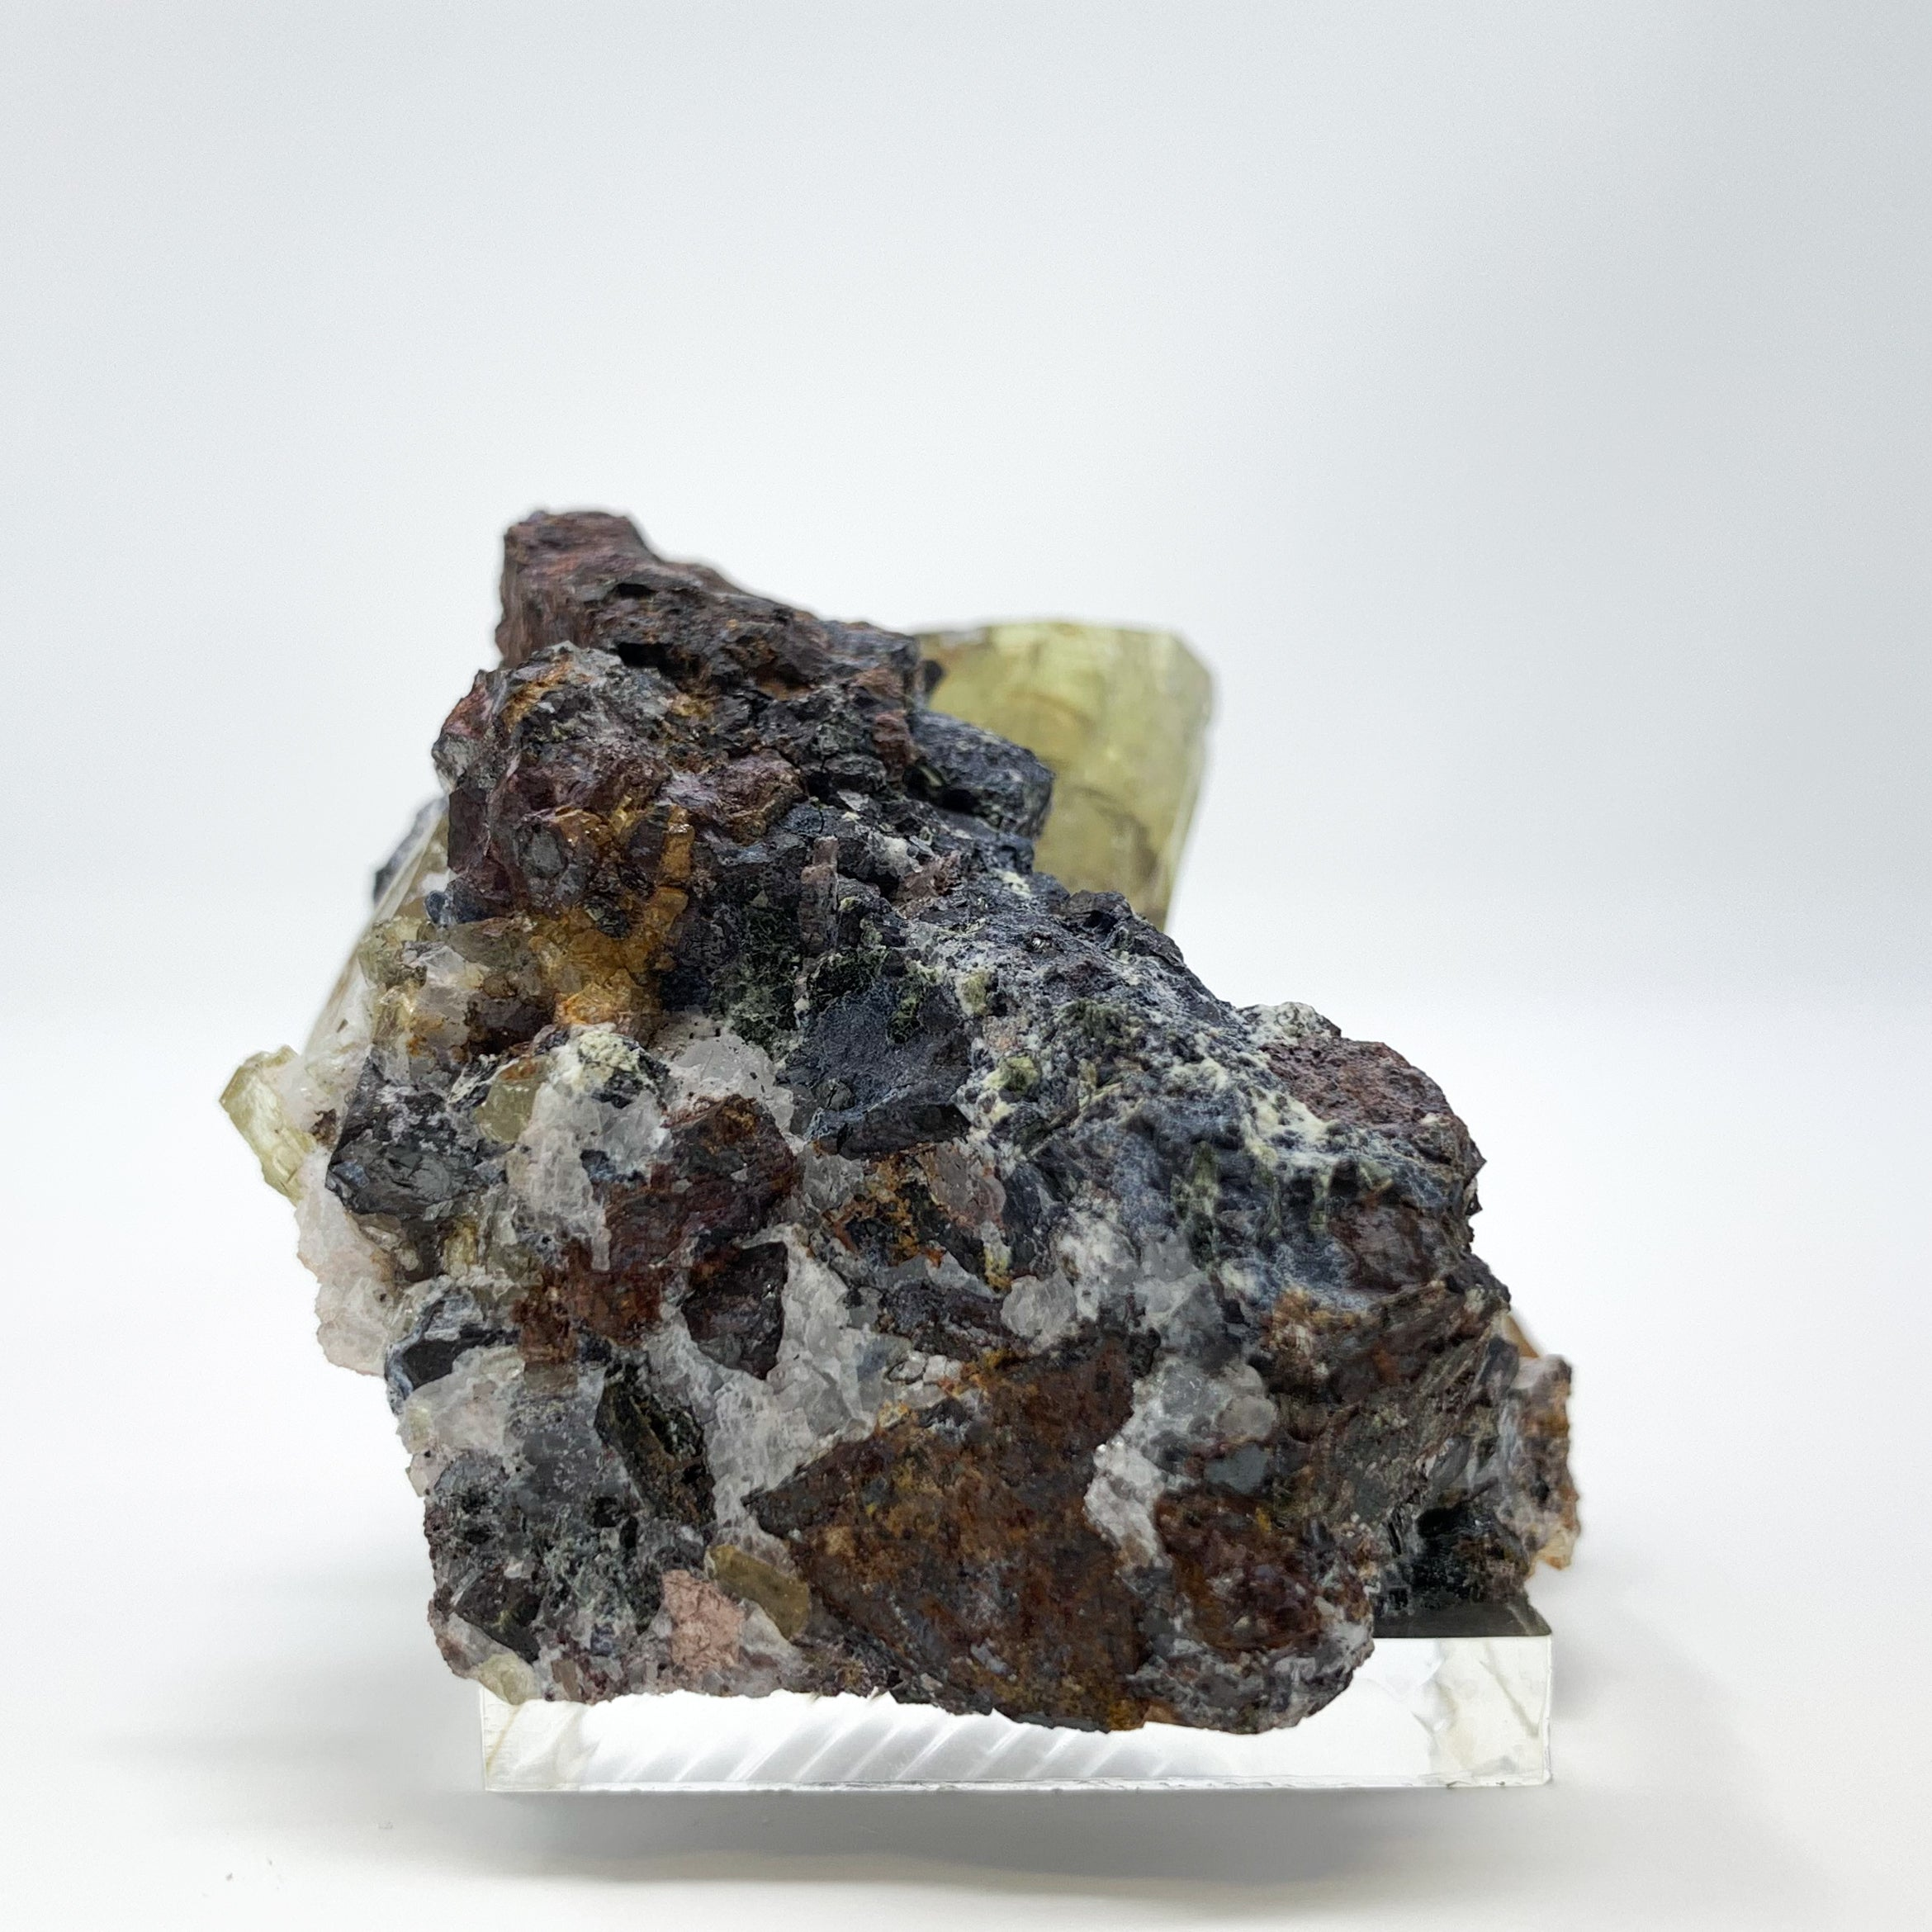 Fluorapatite from Cerro De Mercado Mine, Durango, Mexico